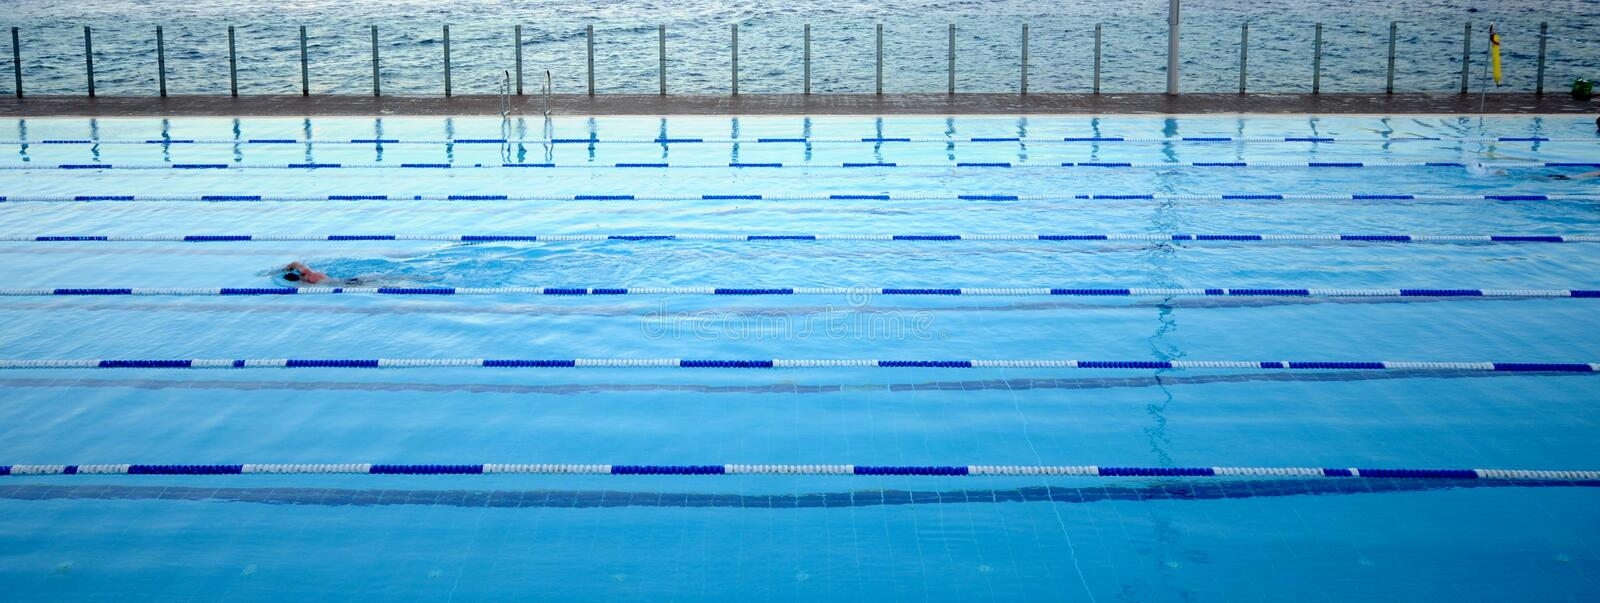 Olympic Pool. Swimming in an outdoor olympic pool stock photo